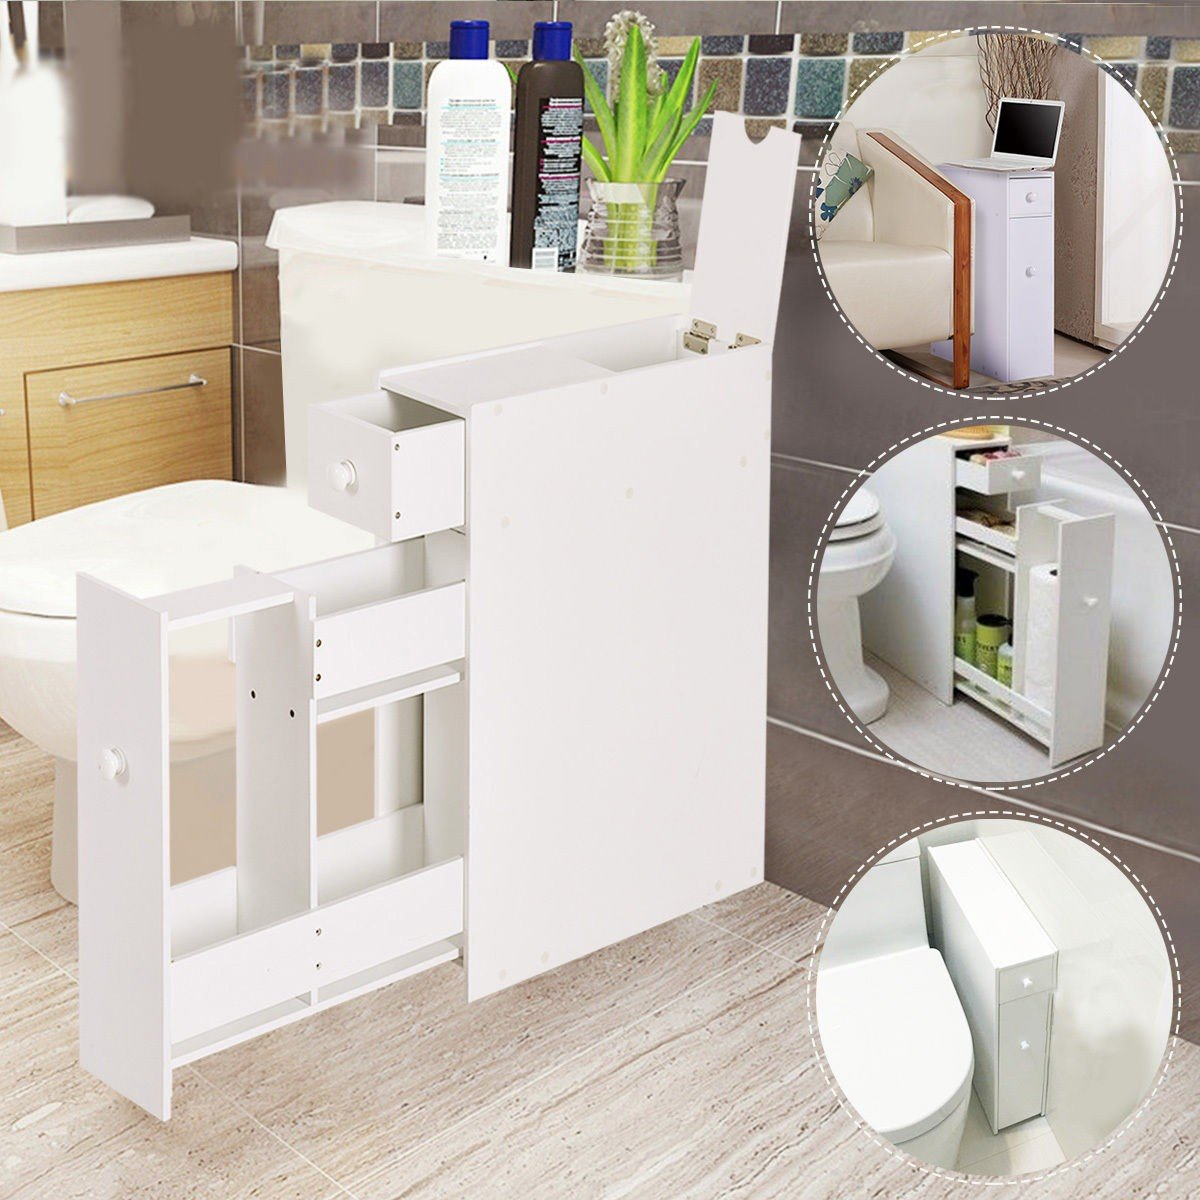 White Bathroom Cabinet Space Saver Storage Organizer